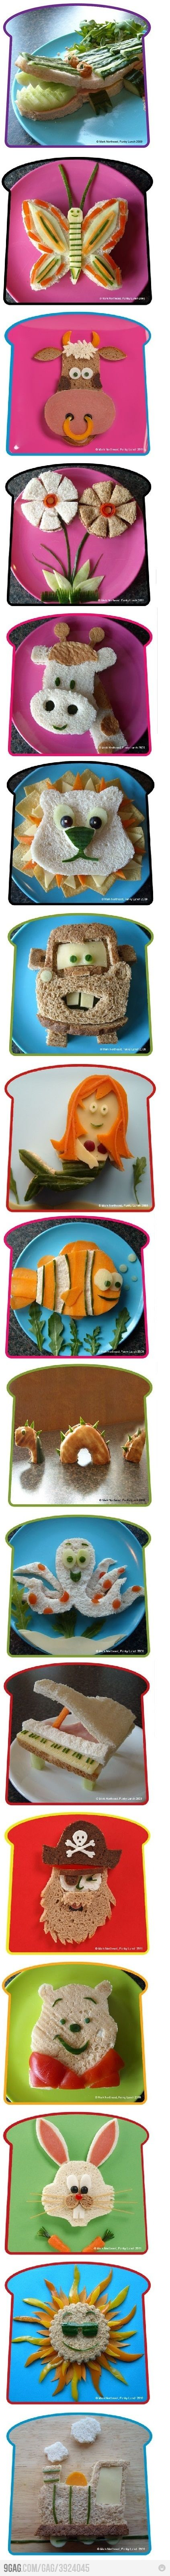 Fun Foods for kids!